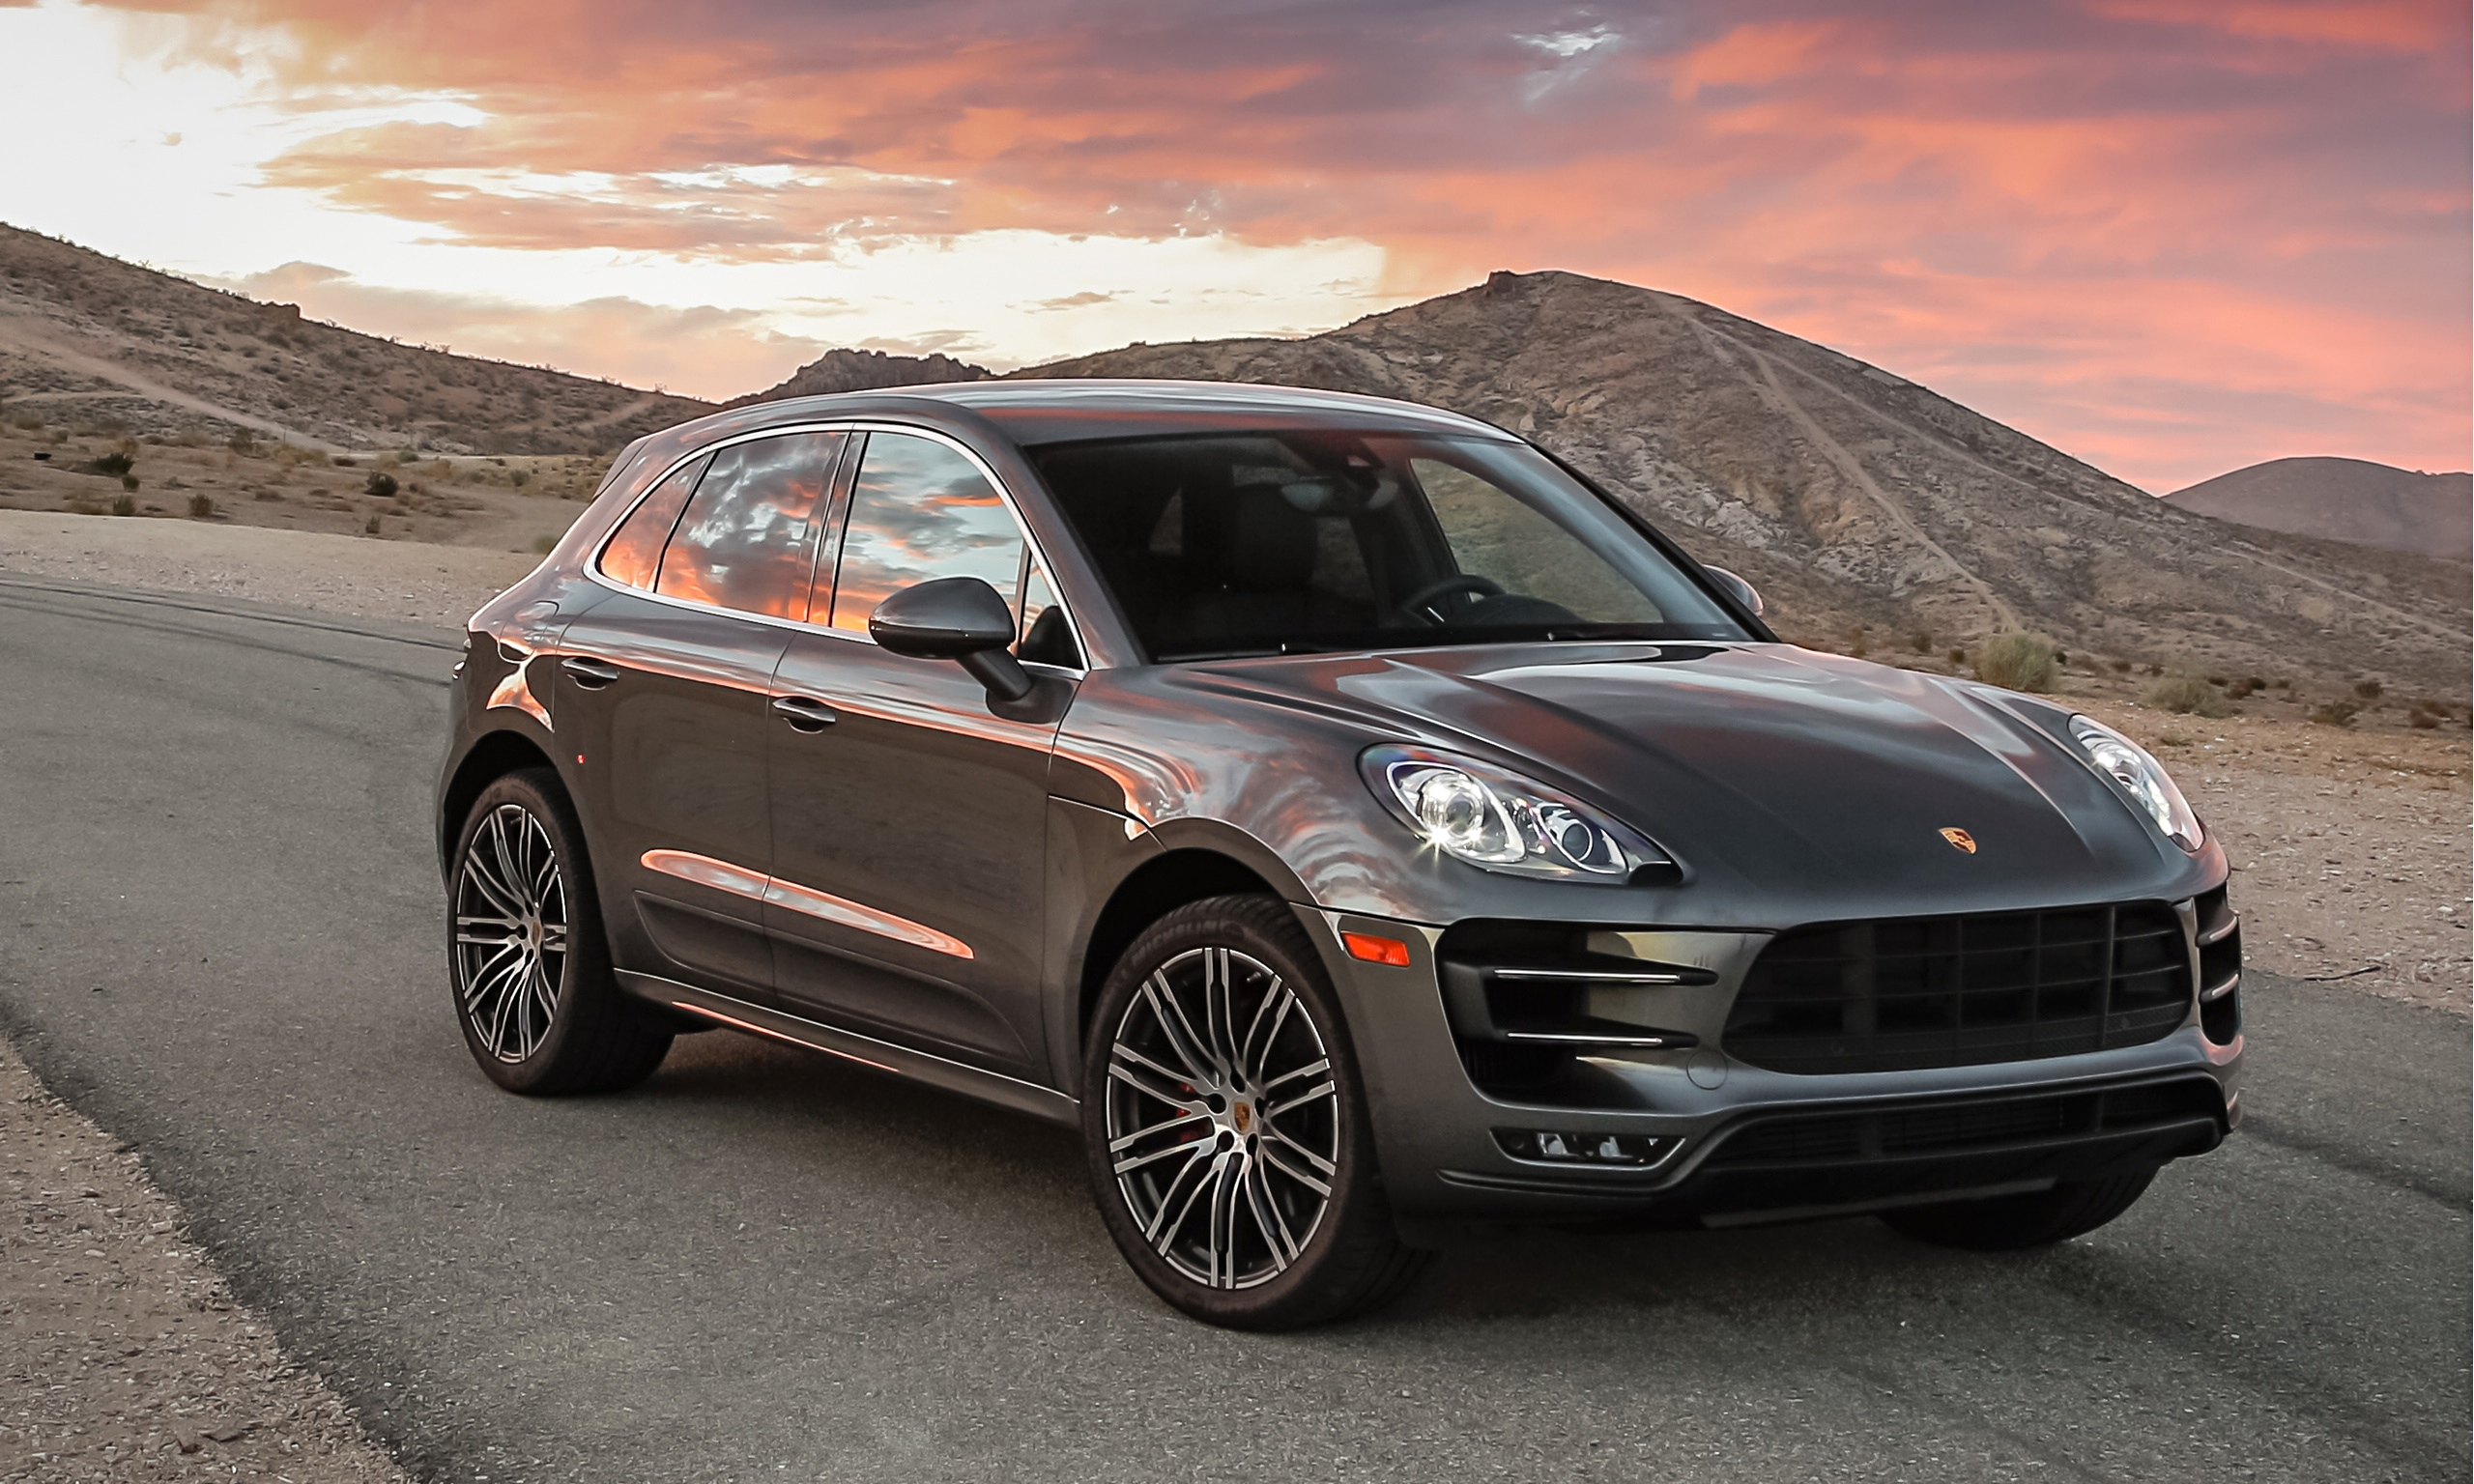 porsche macan car review martin love technology the guardian. Black Bedroom Furniture Sets. Home Design Ideas